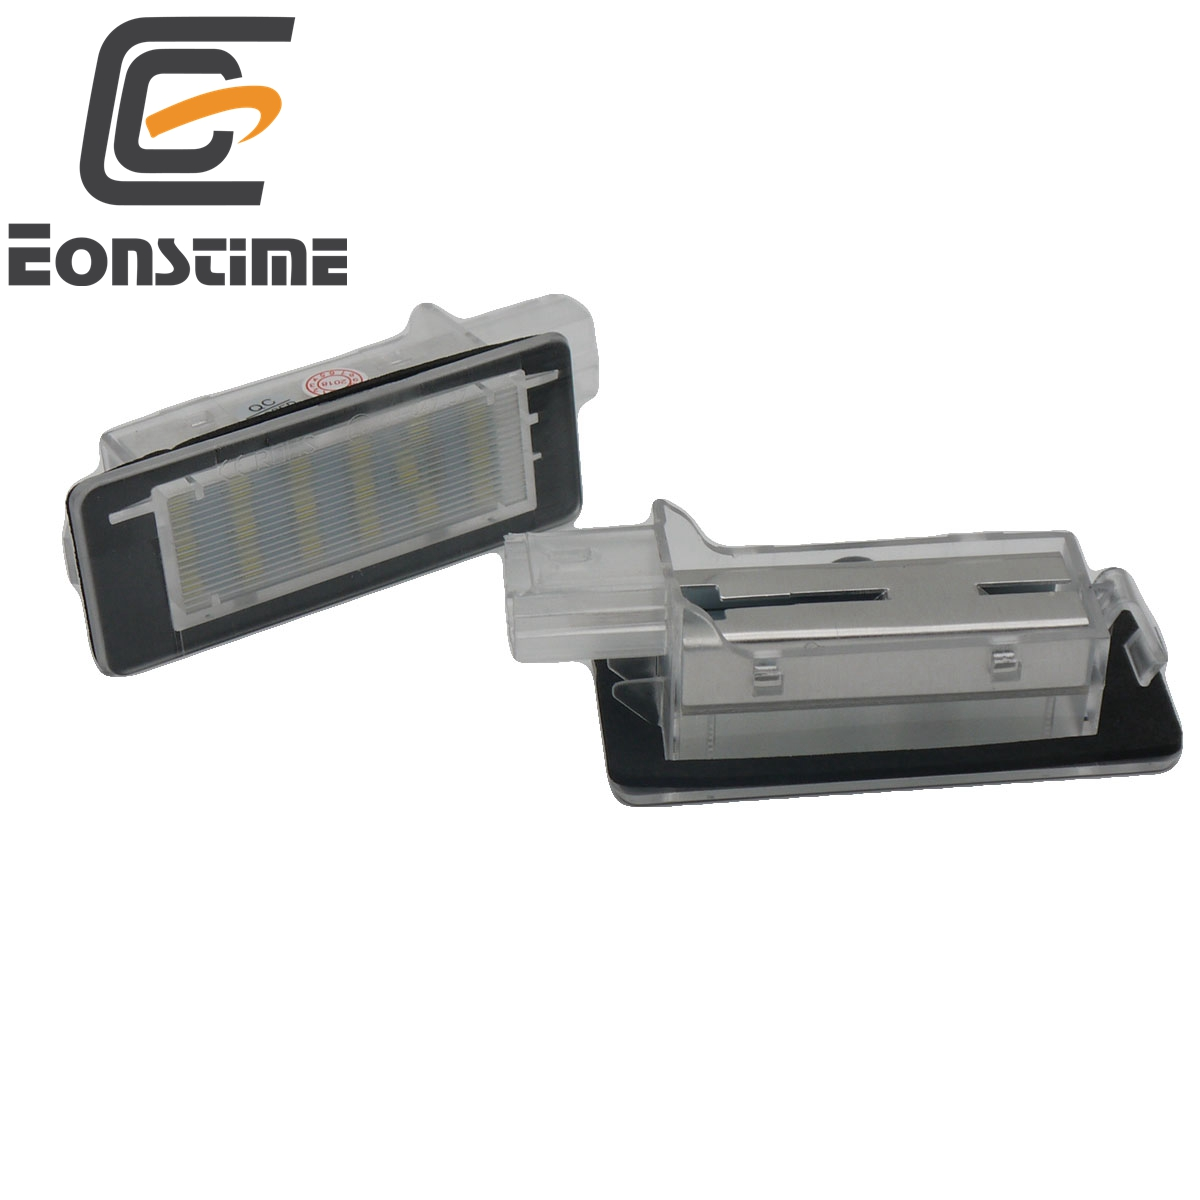 Eonstime 2x Free Error <font><b>LED</b></font> rear number plate lamp lights For <font><b>Renault</b></font> Clio Espace Fluence Laguna Latitude Grand <font><b>Modus</b></font> Zoe Scenic image